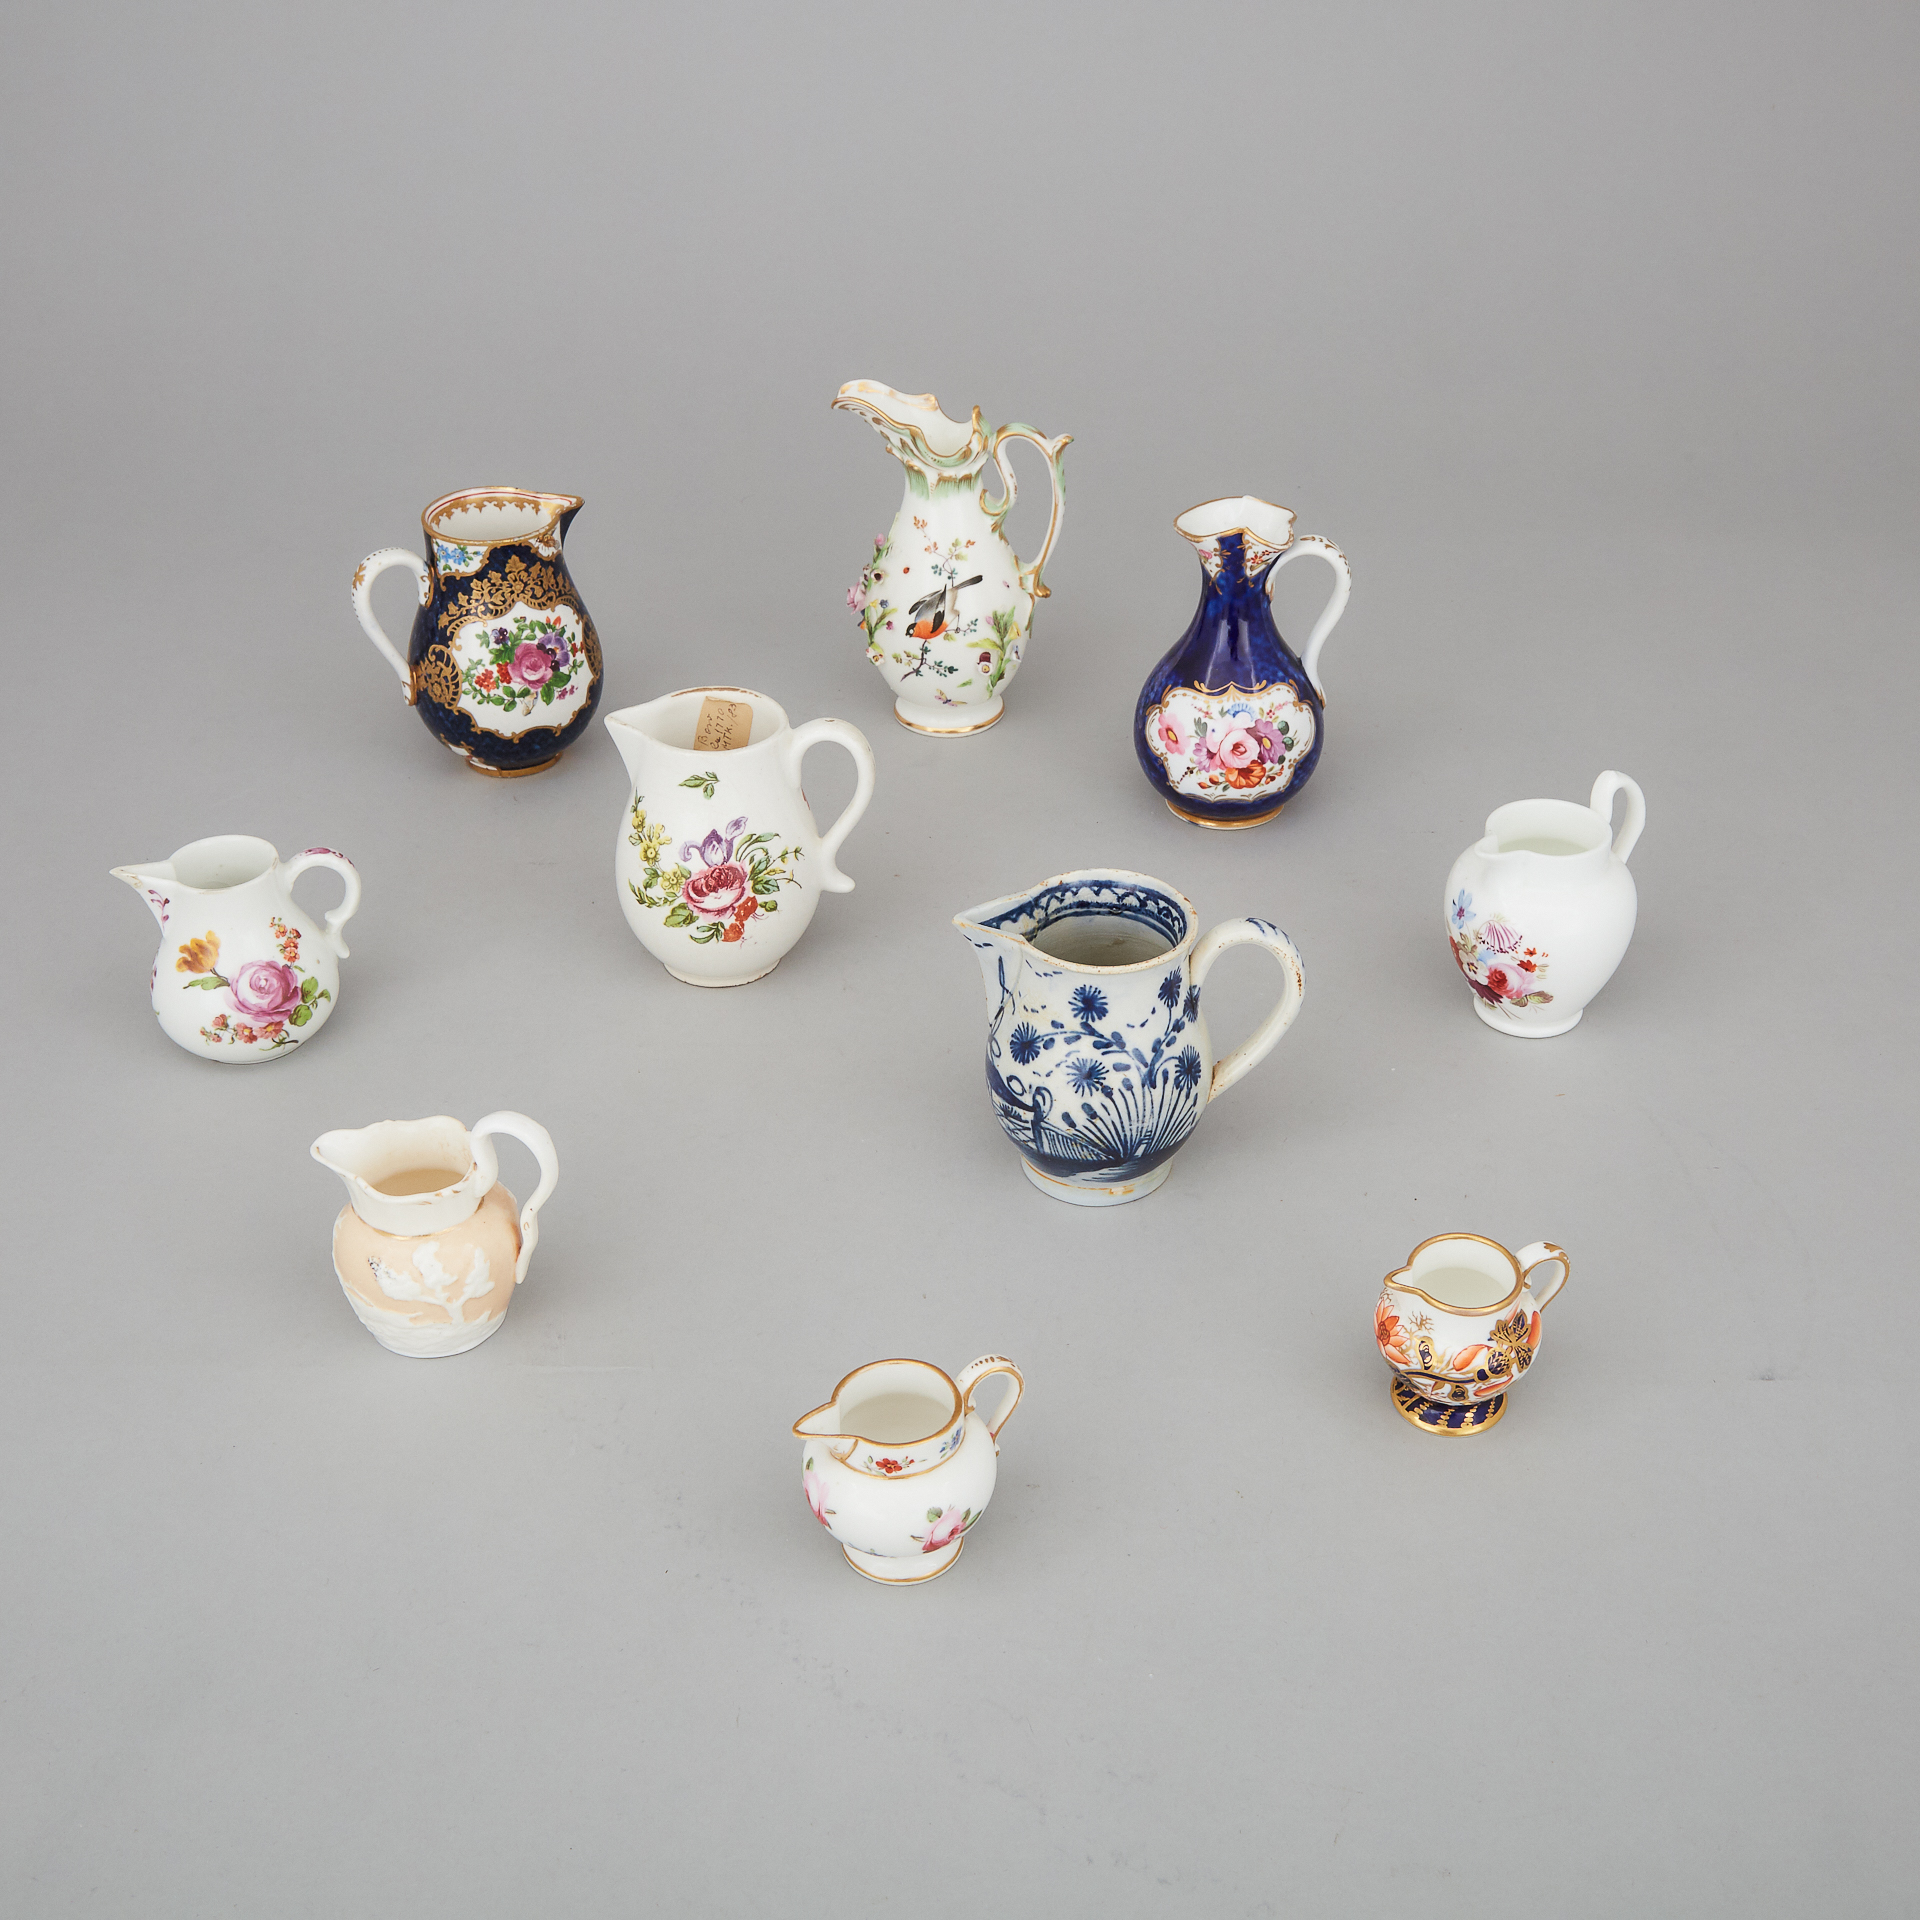 Ten English and Continental Porcelain and Pottery Small Cream Jugs, 19th century